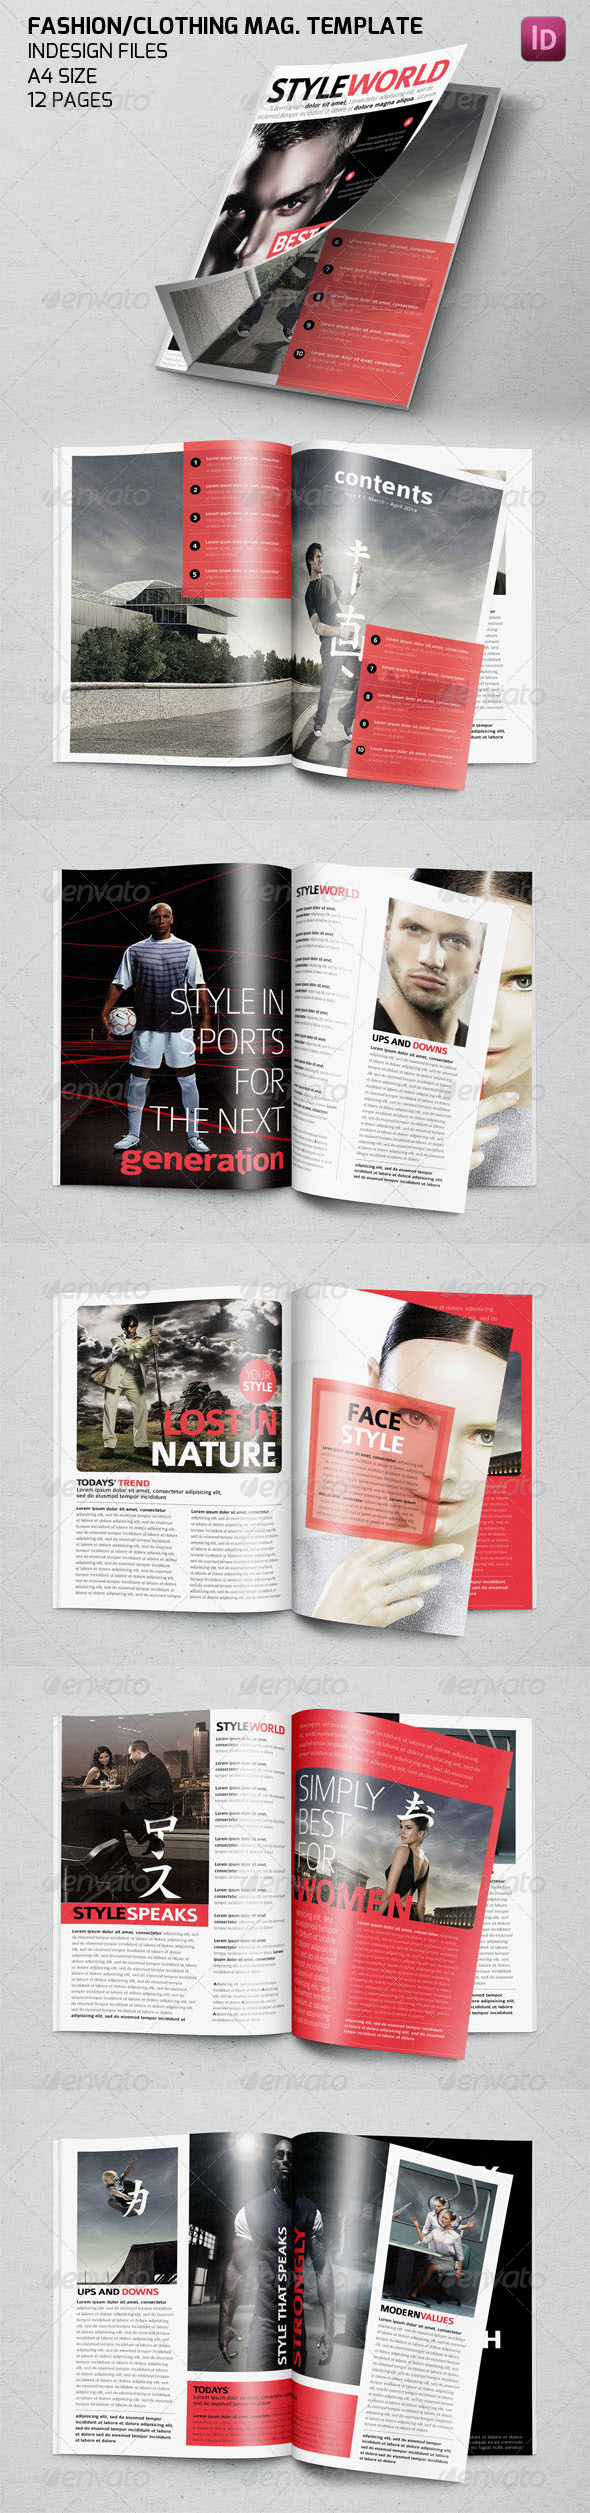 GraphicRiver Clothing Fashion Style Magazine Template 7533124